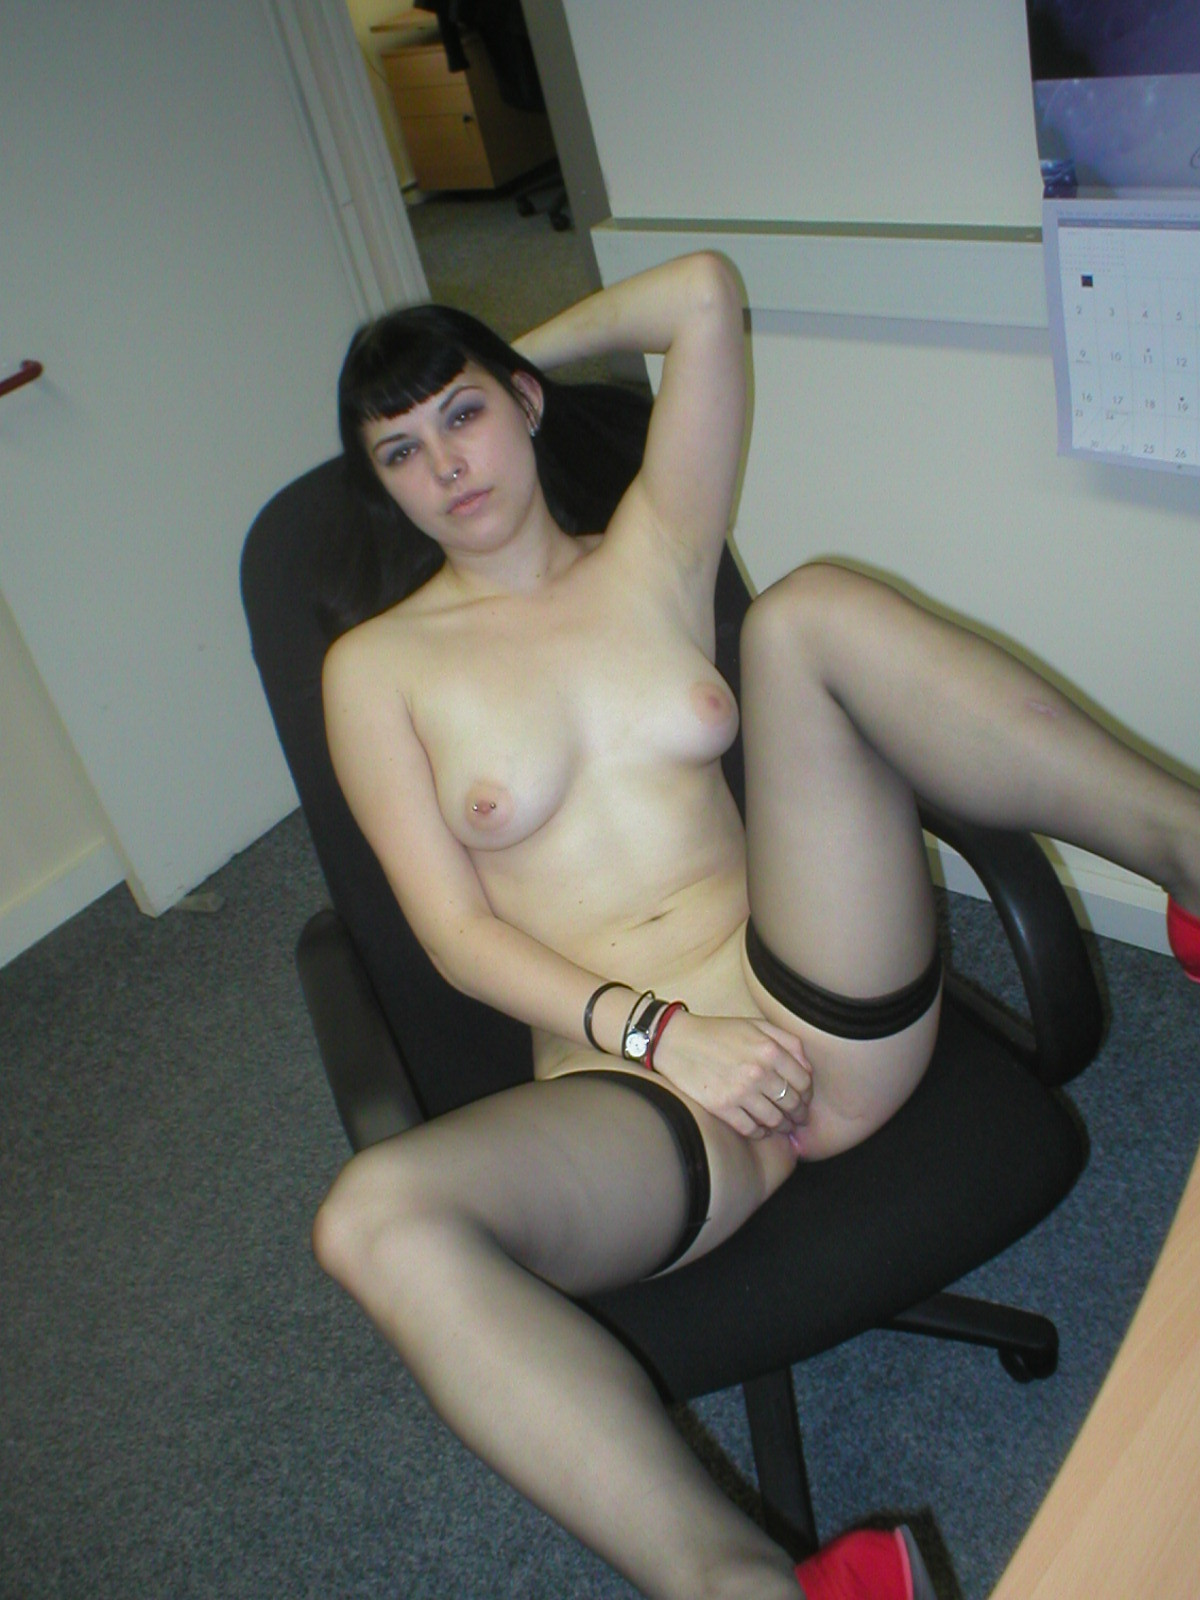 Understand Naughty girls at the office something